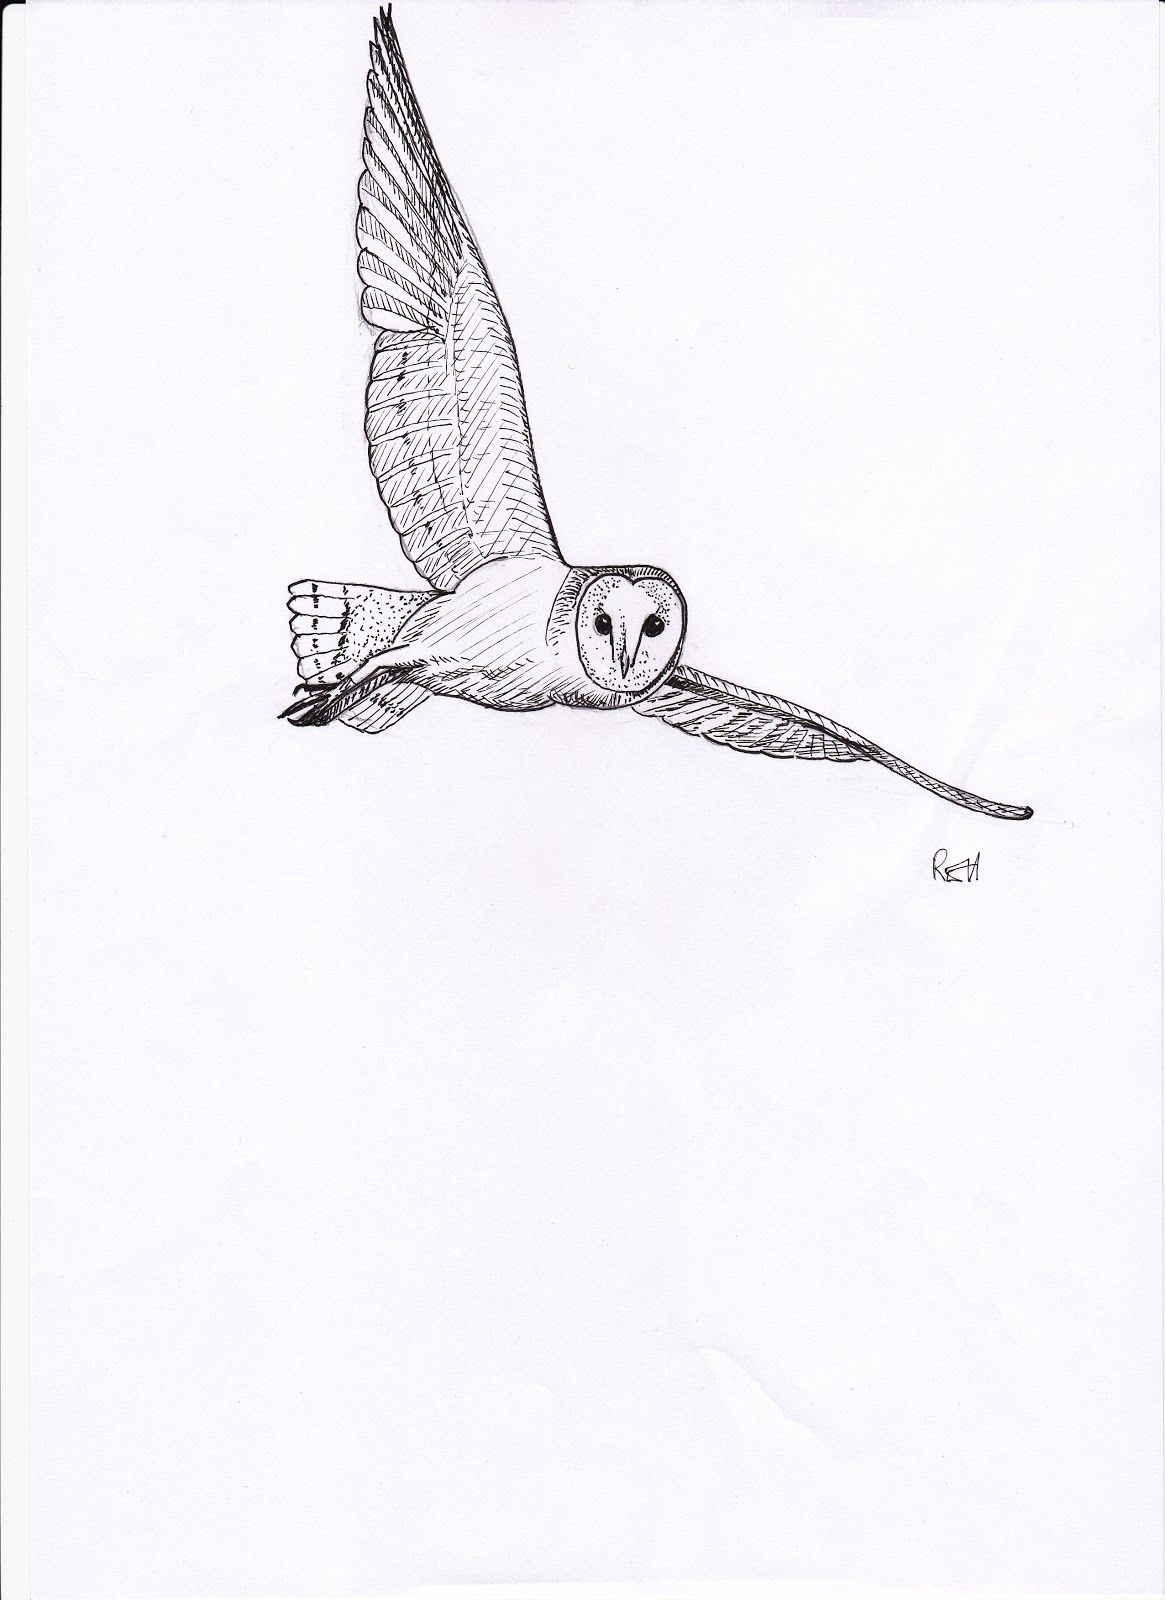 Pin By Clayton On Tattoos In 2020 With Images Owl Tattoo Design Barn Owl Tattoo